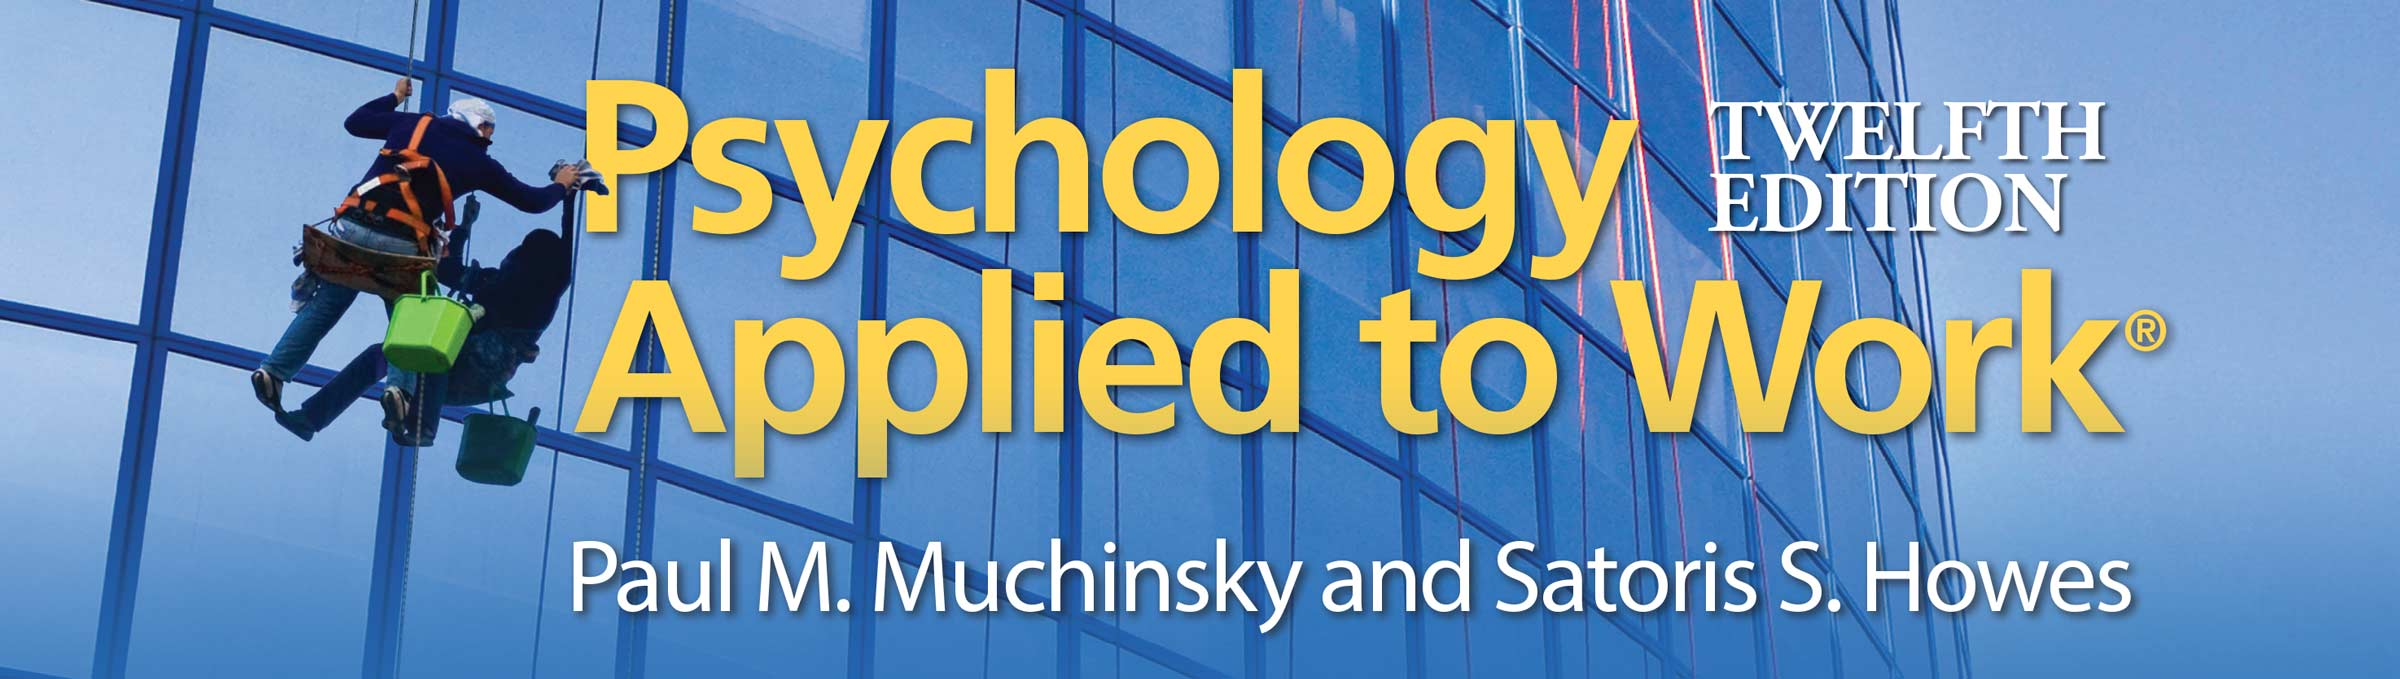 Psychology Applied to Work - Twelfth Edition